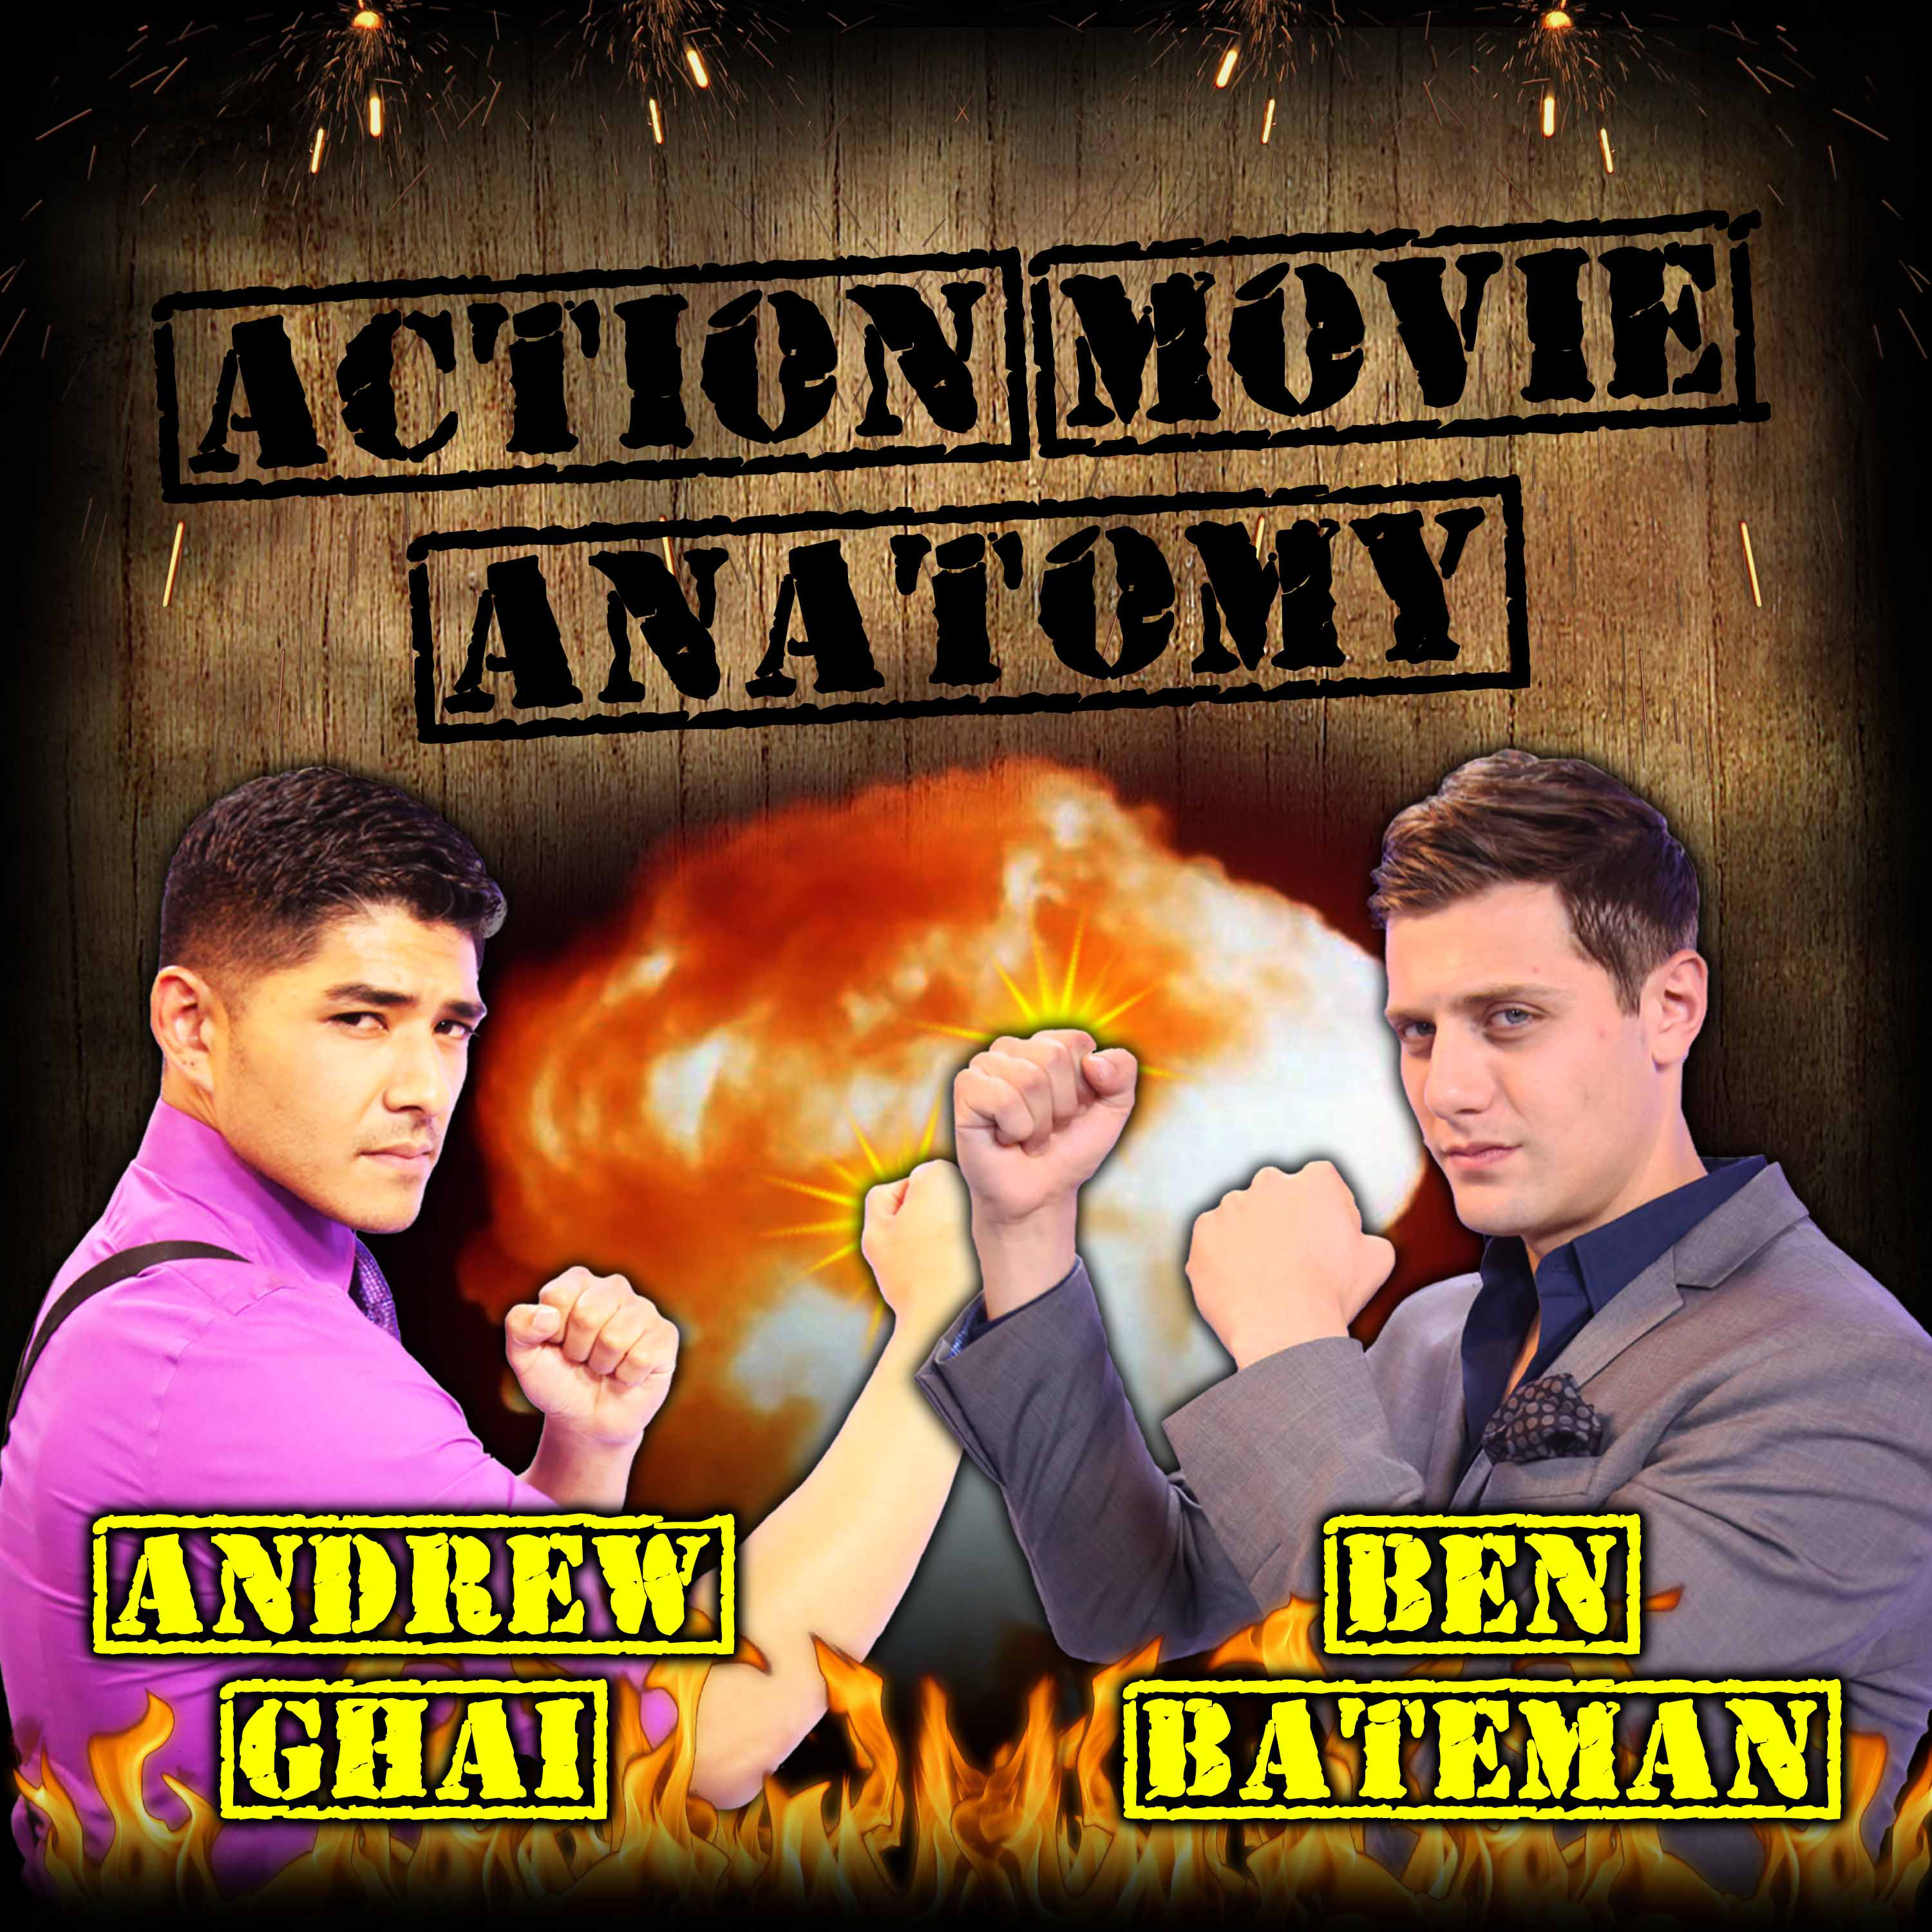 Action Movie Anatomy By Popcorn Talk Network On Apple Podcasts